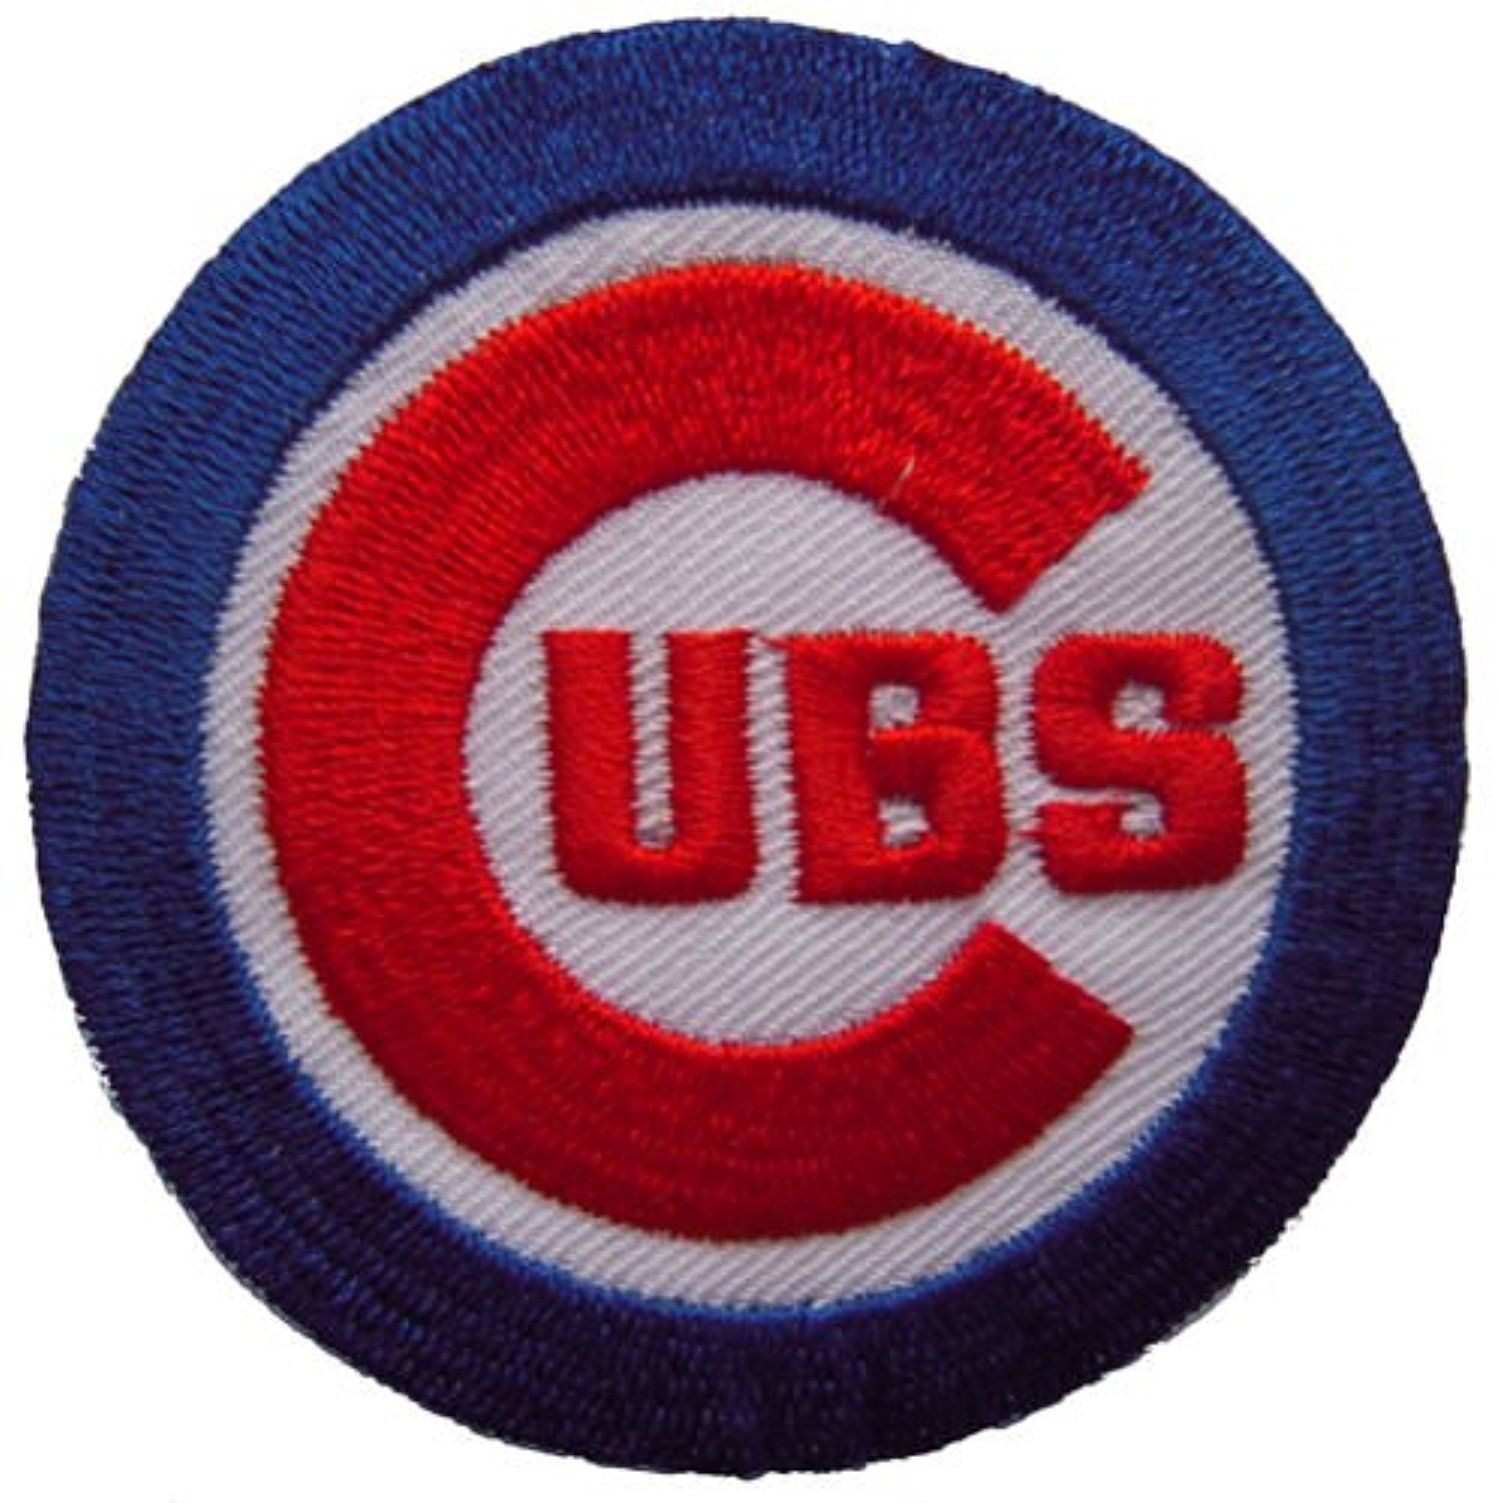 New mlb chicago cubs logo baseball embroidered iron on patch 28 new mlb chicago cubs logo baseball embroidered iron on patch 28 inch i24 buycottarizona